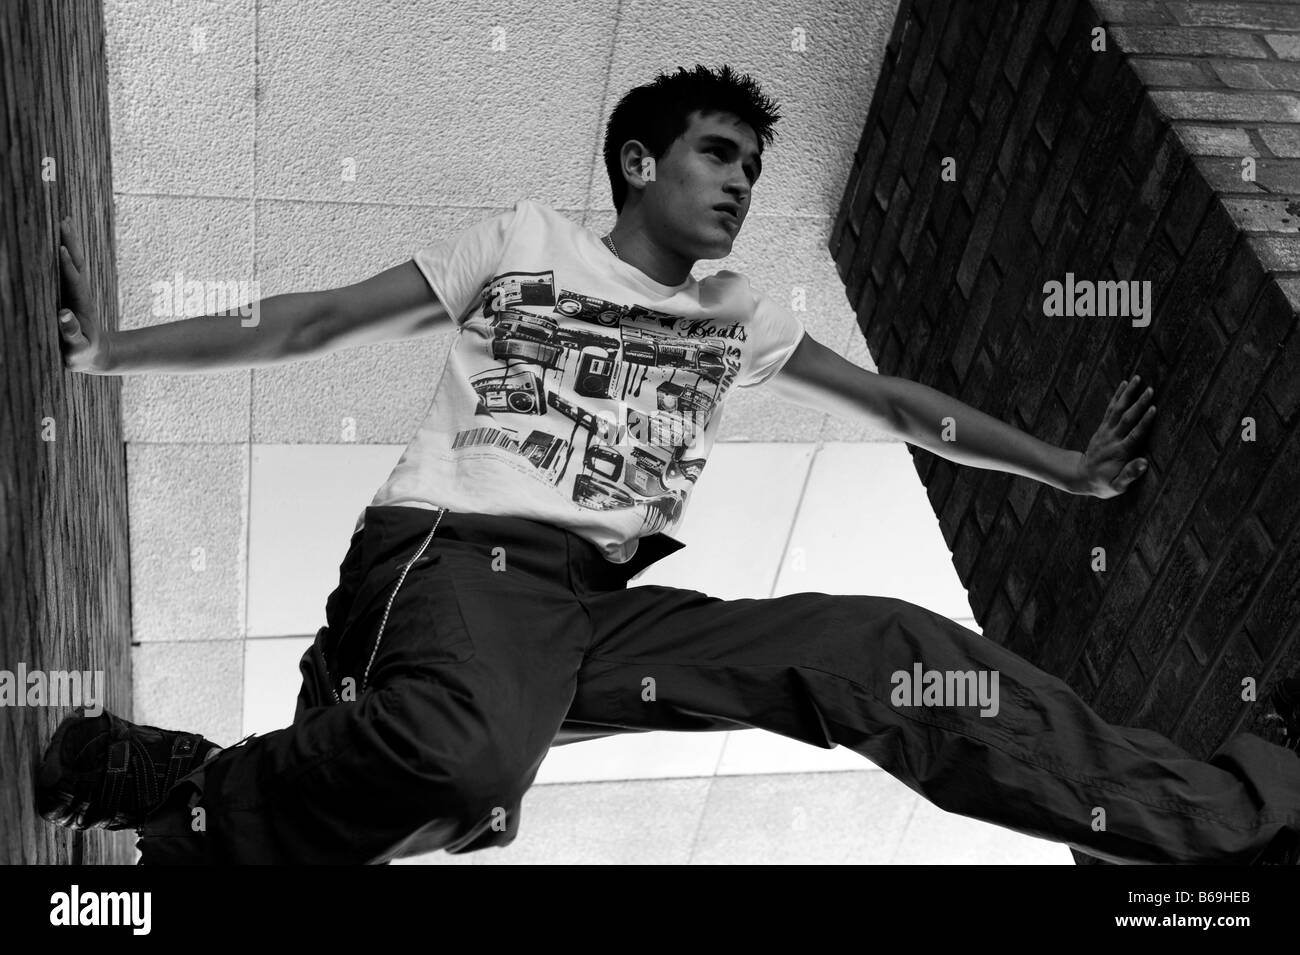 Holding the walls apart - a demonstration of parkour techniques - Stock Image